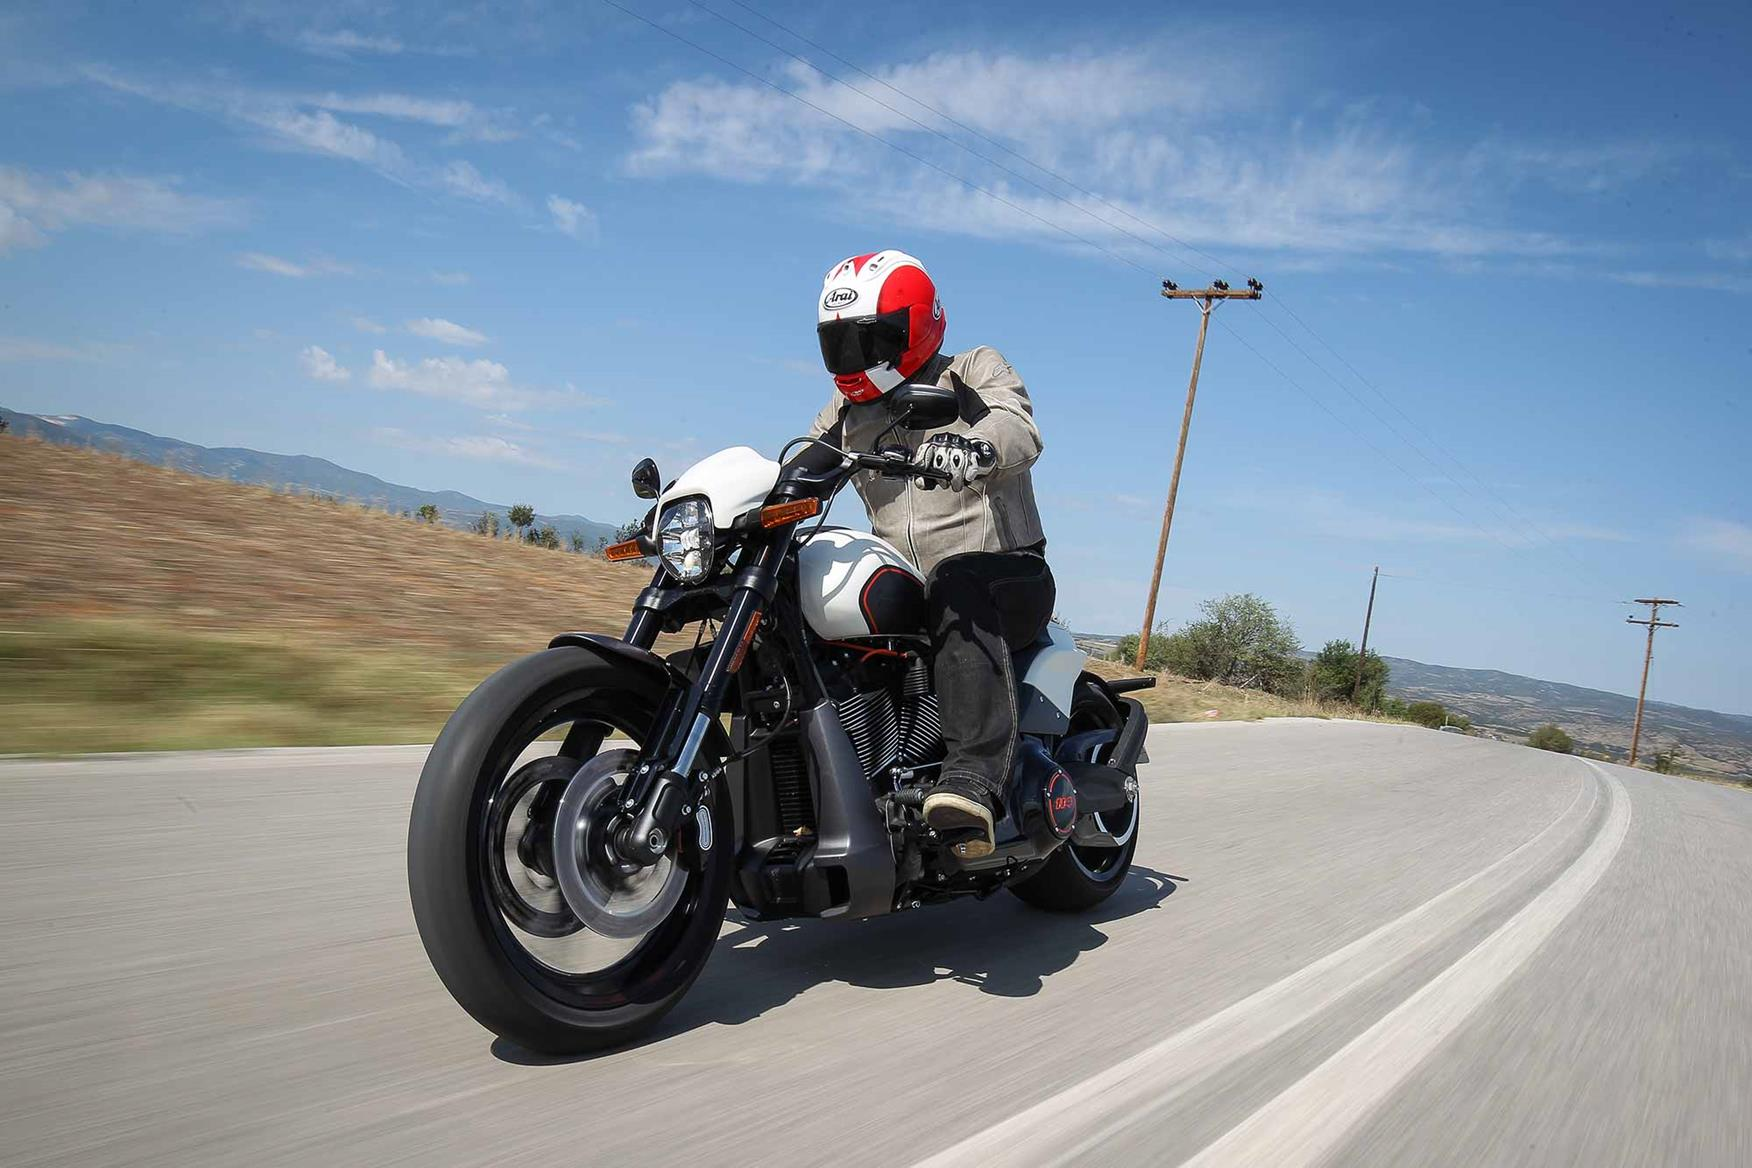 The Harley-Davidson FXDR in action